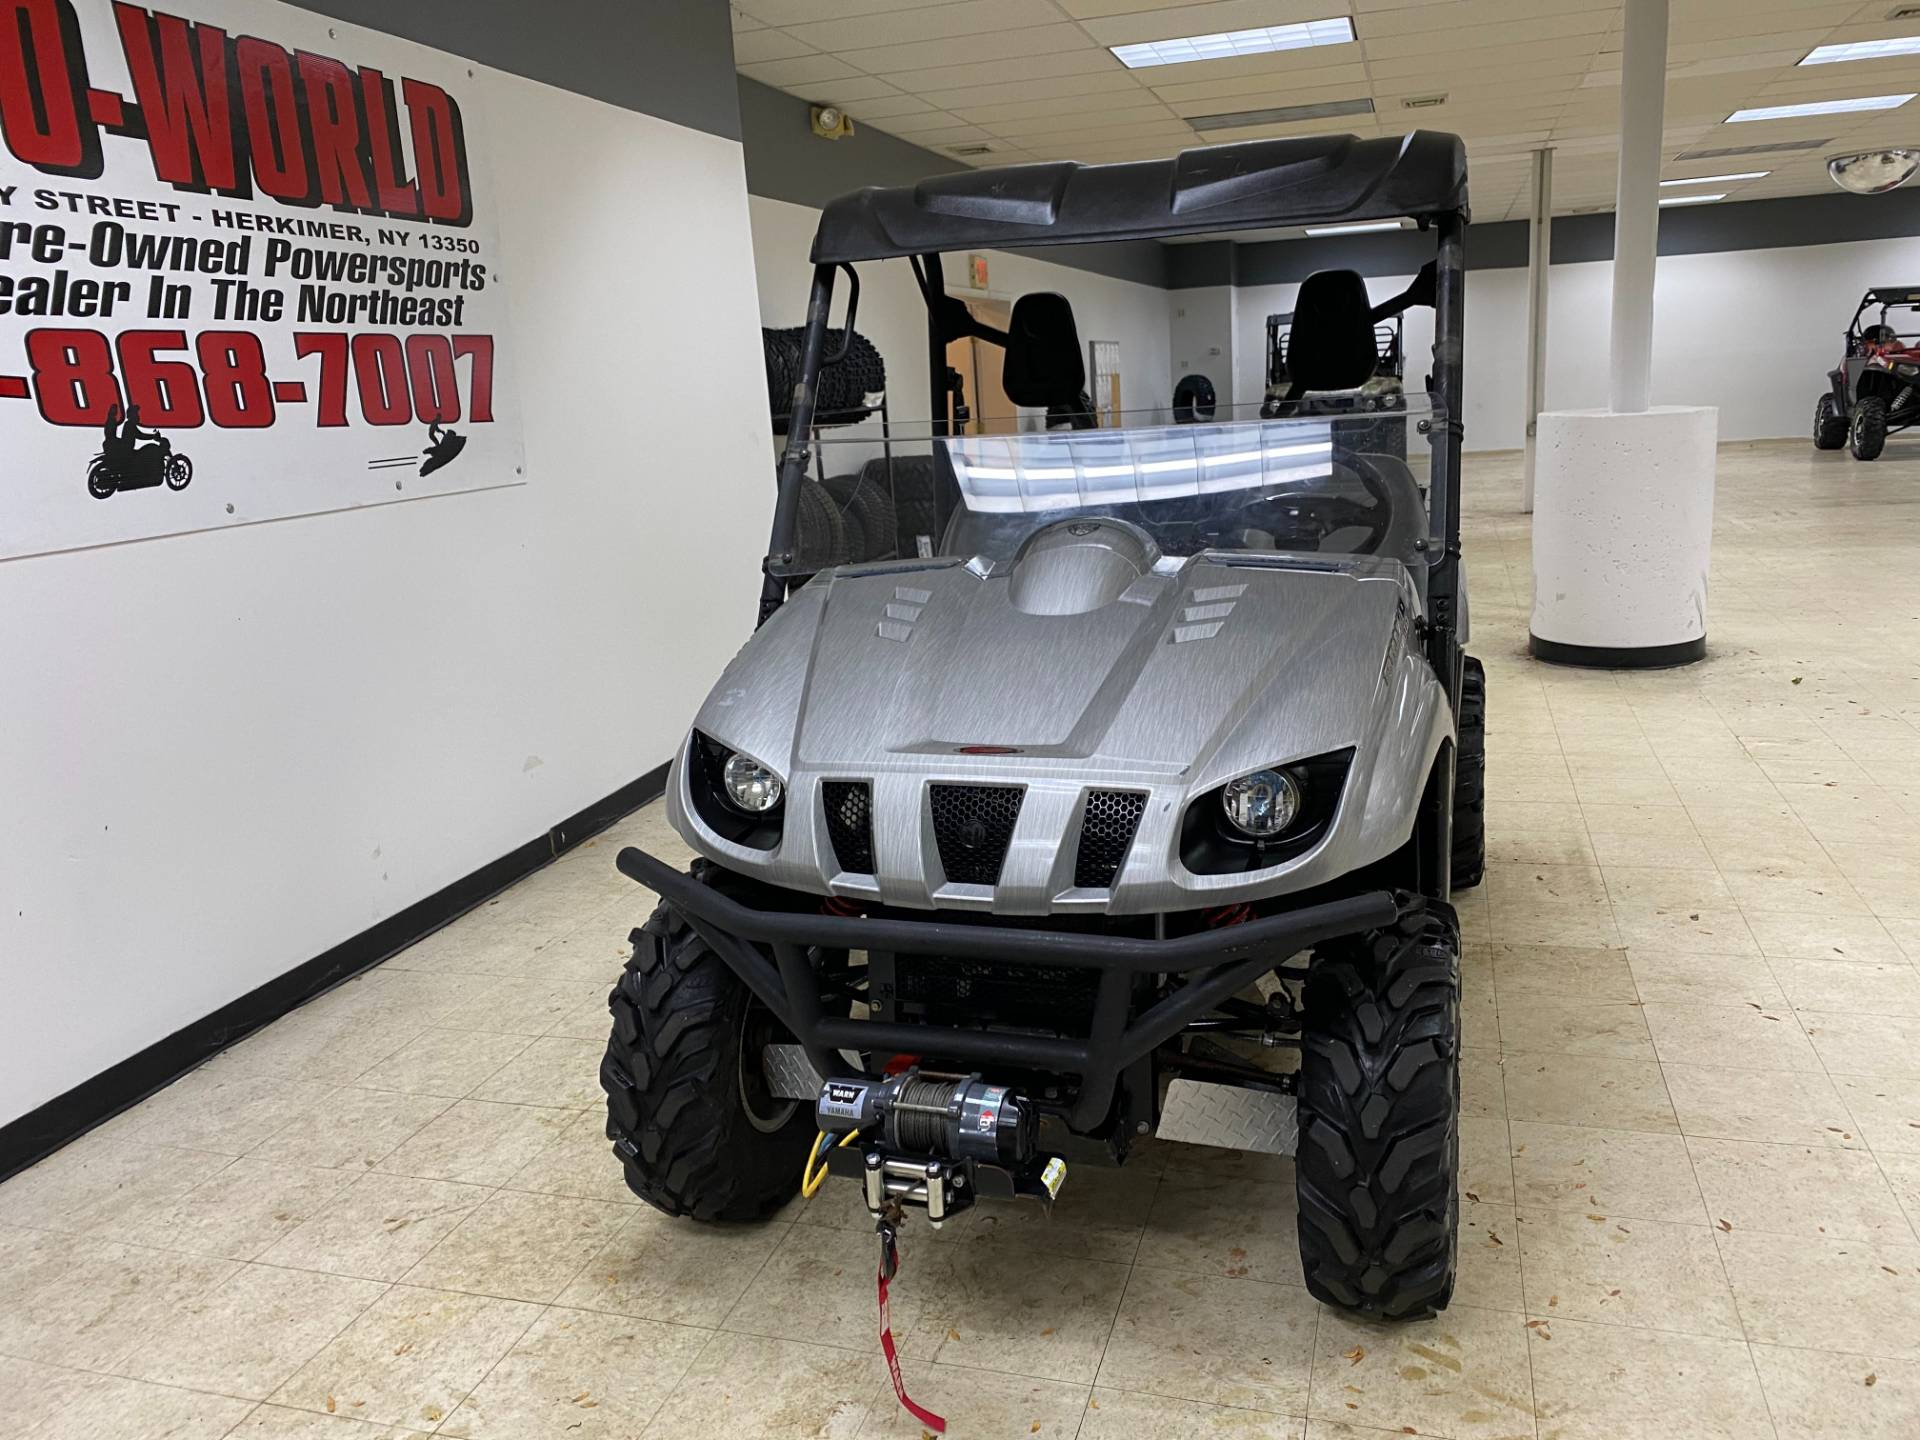 2008 Yamaha Rhino 700 FI Auto. 4x4 Sport Edition in Herkimer, New York - Photo 5